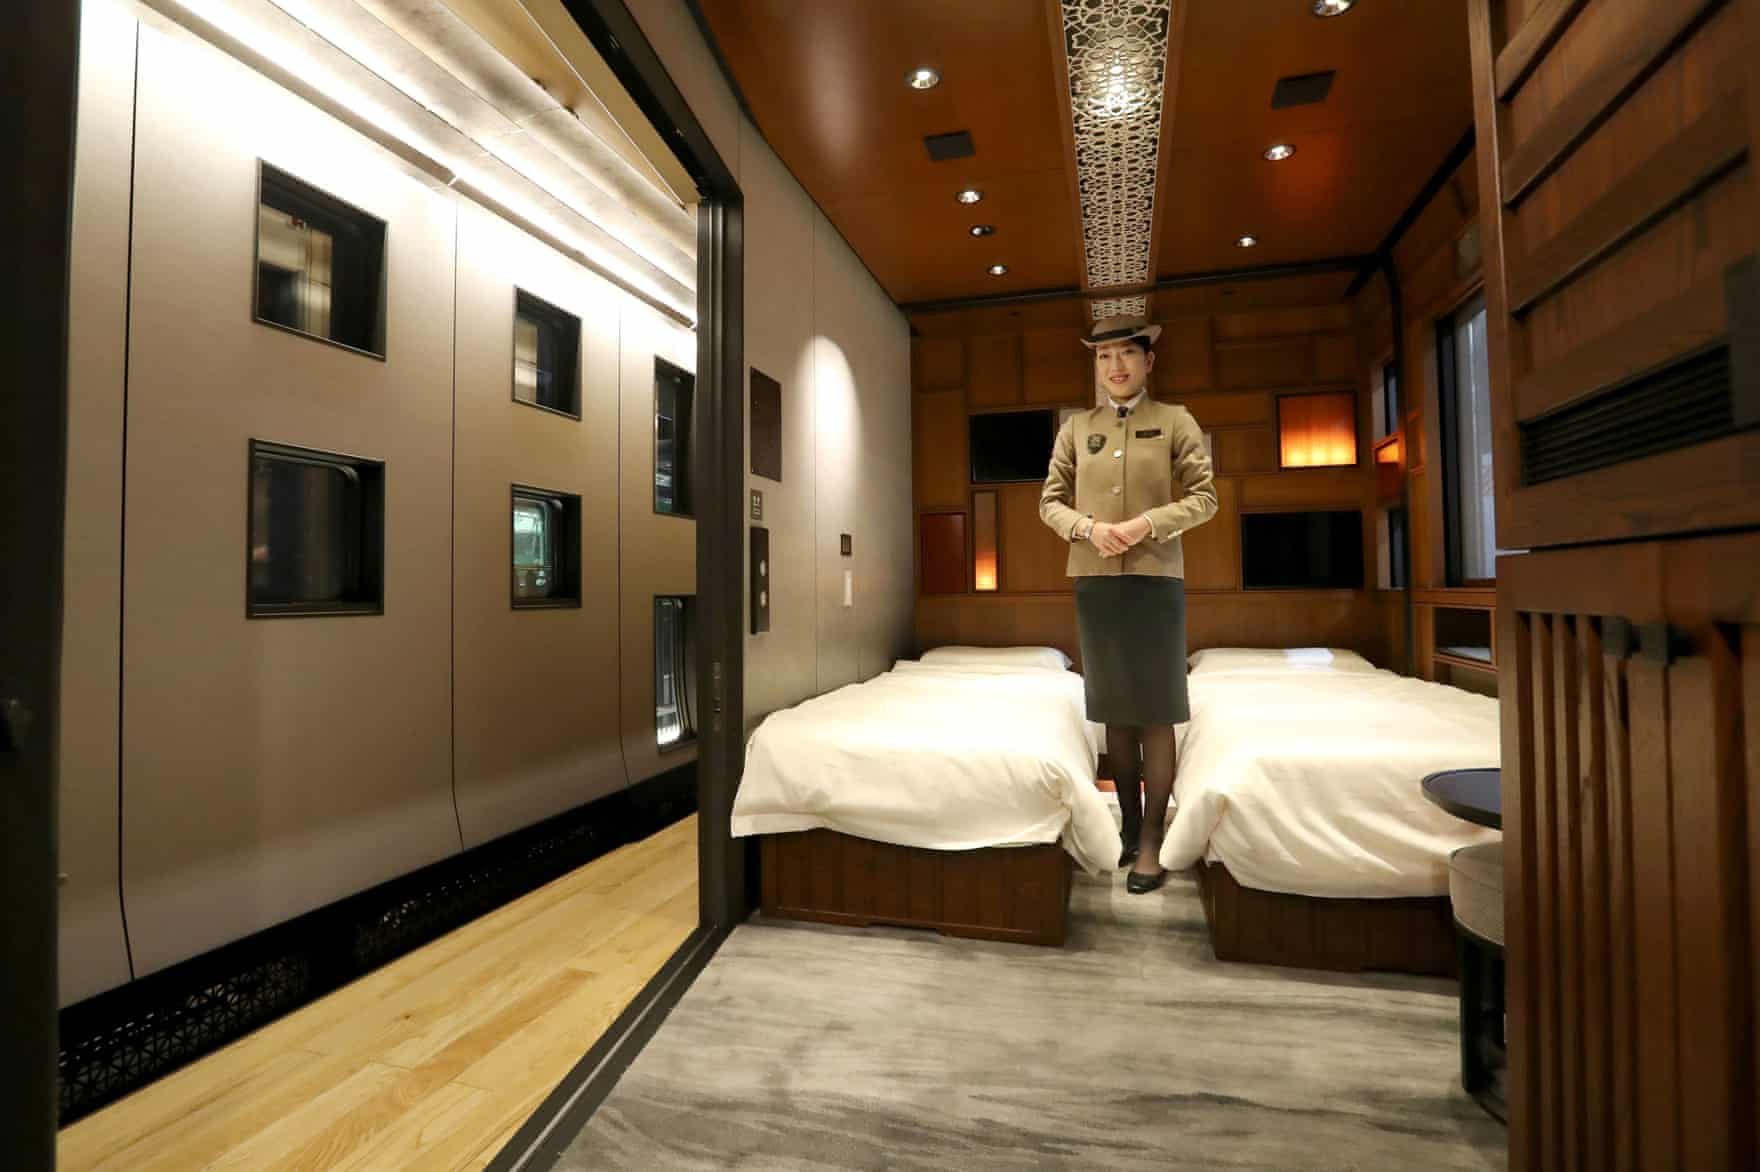 The suite room, one of 17 on the Train Suite Shiki-shima